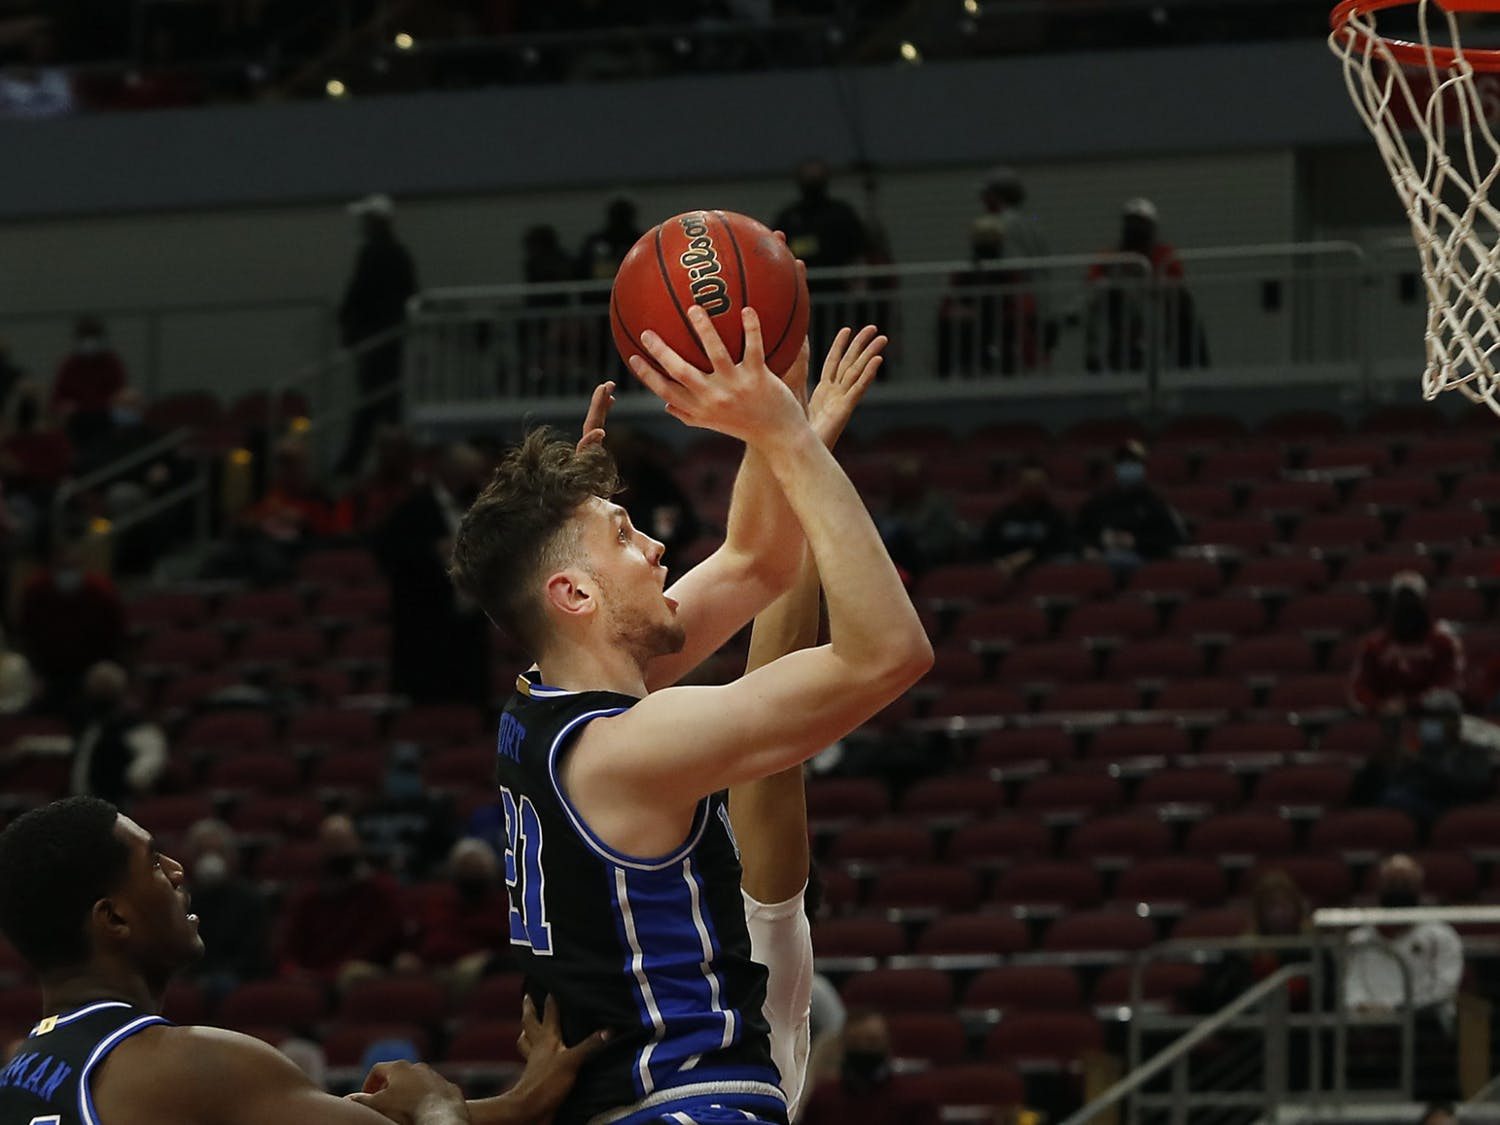 Despite Matthew Hurt's 24 points, the Blue Devils were unable to secure their first road win of the season.